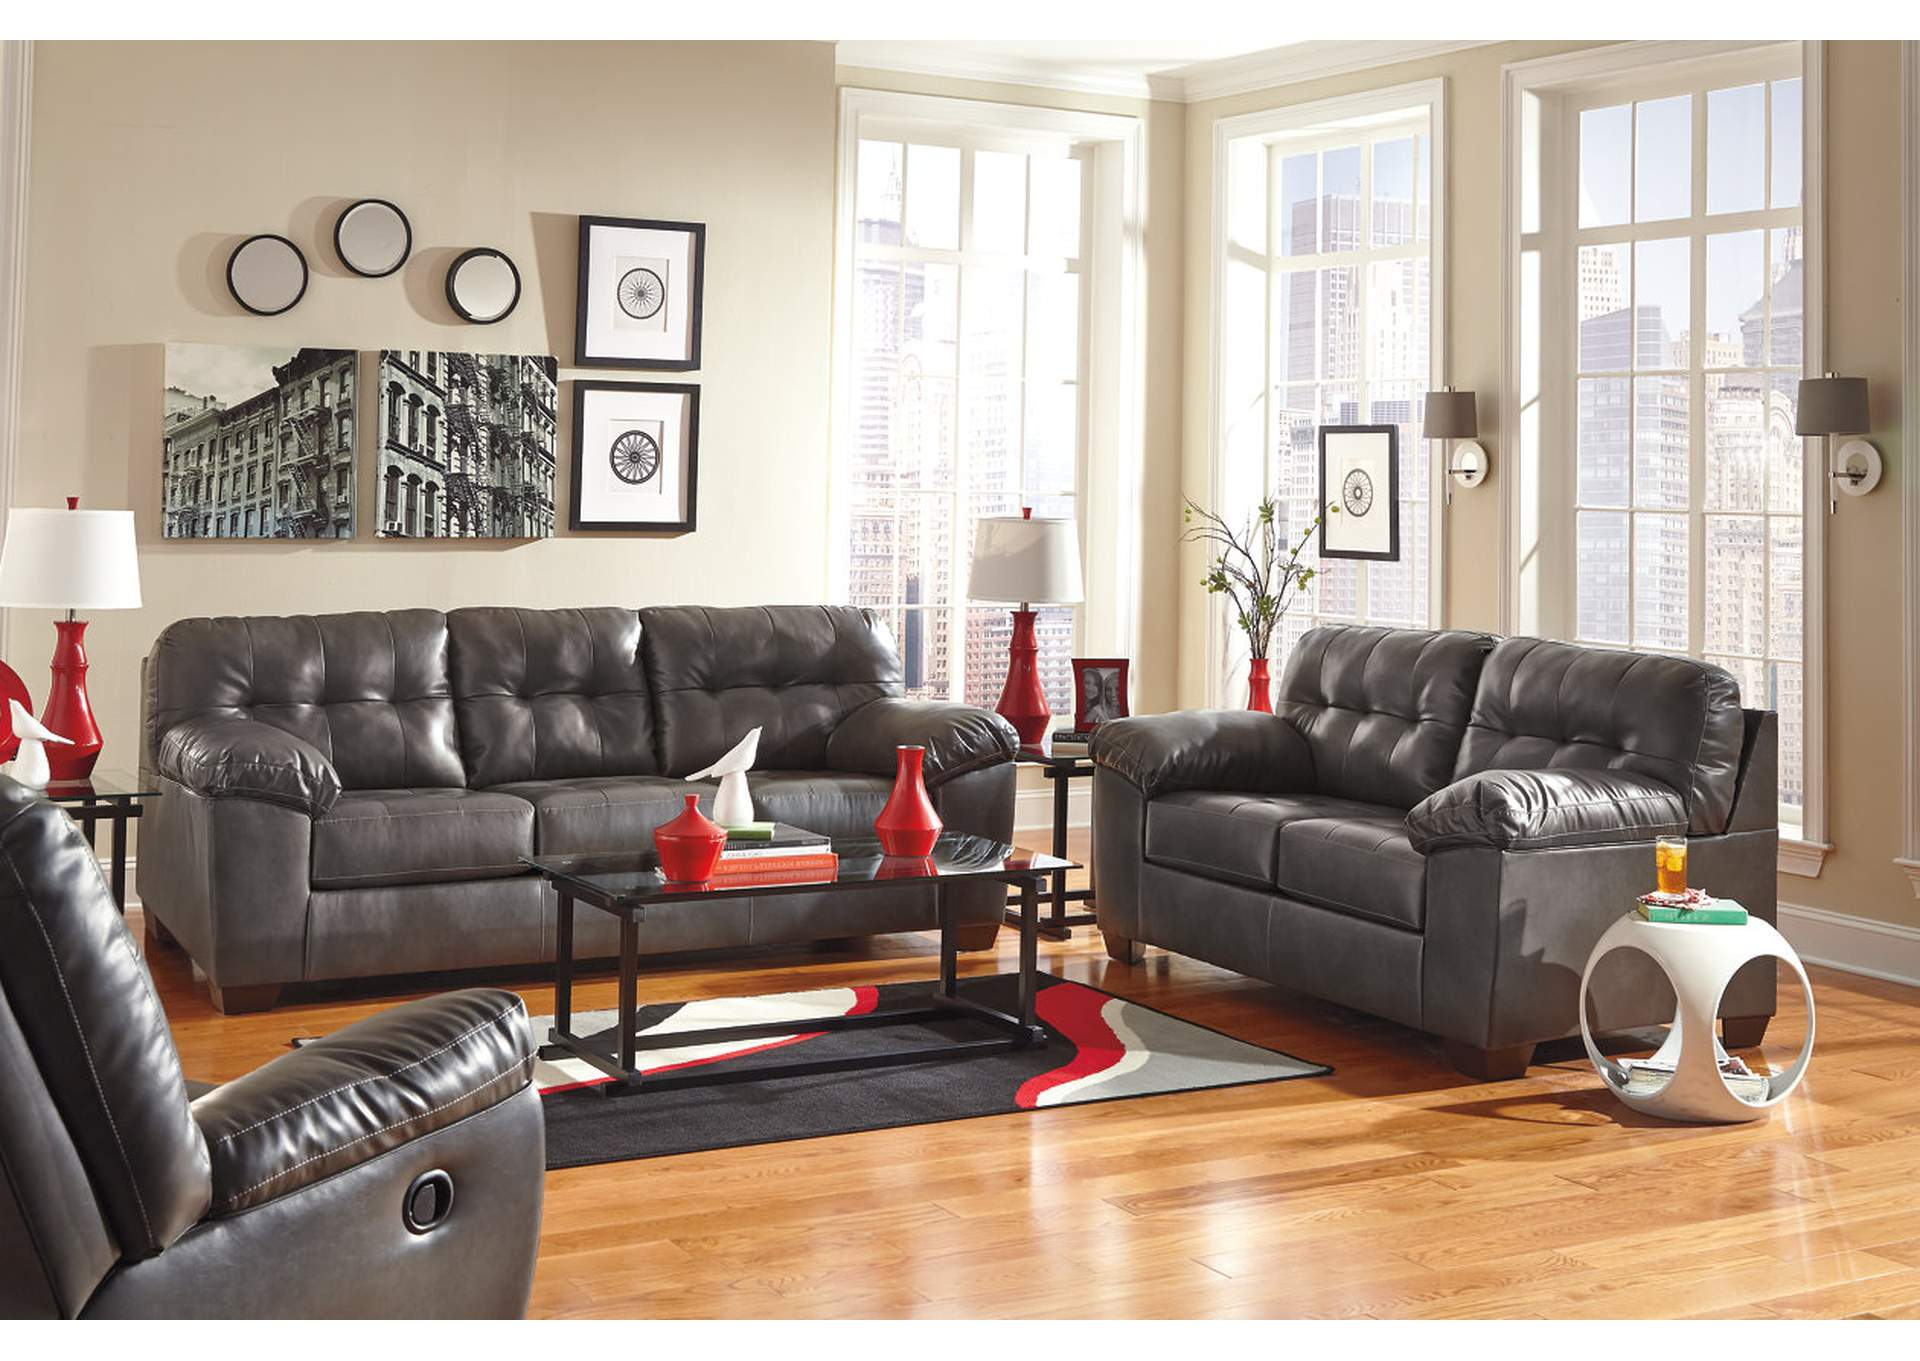 Alliston DuraBlend Gray Queen Sofa Sleeper,Signature Design By Ashley